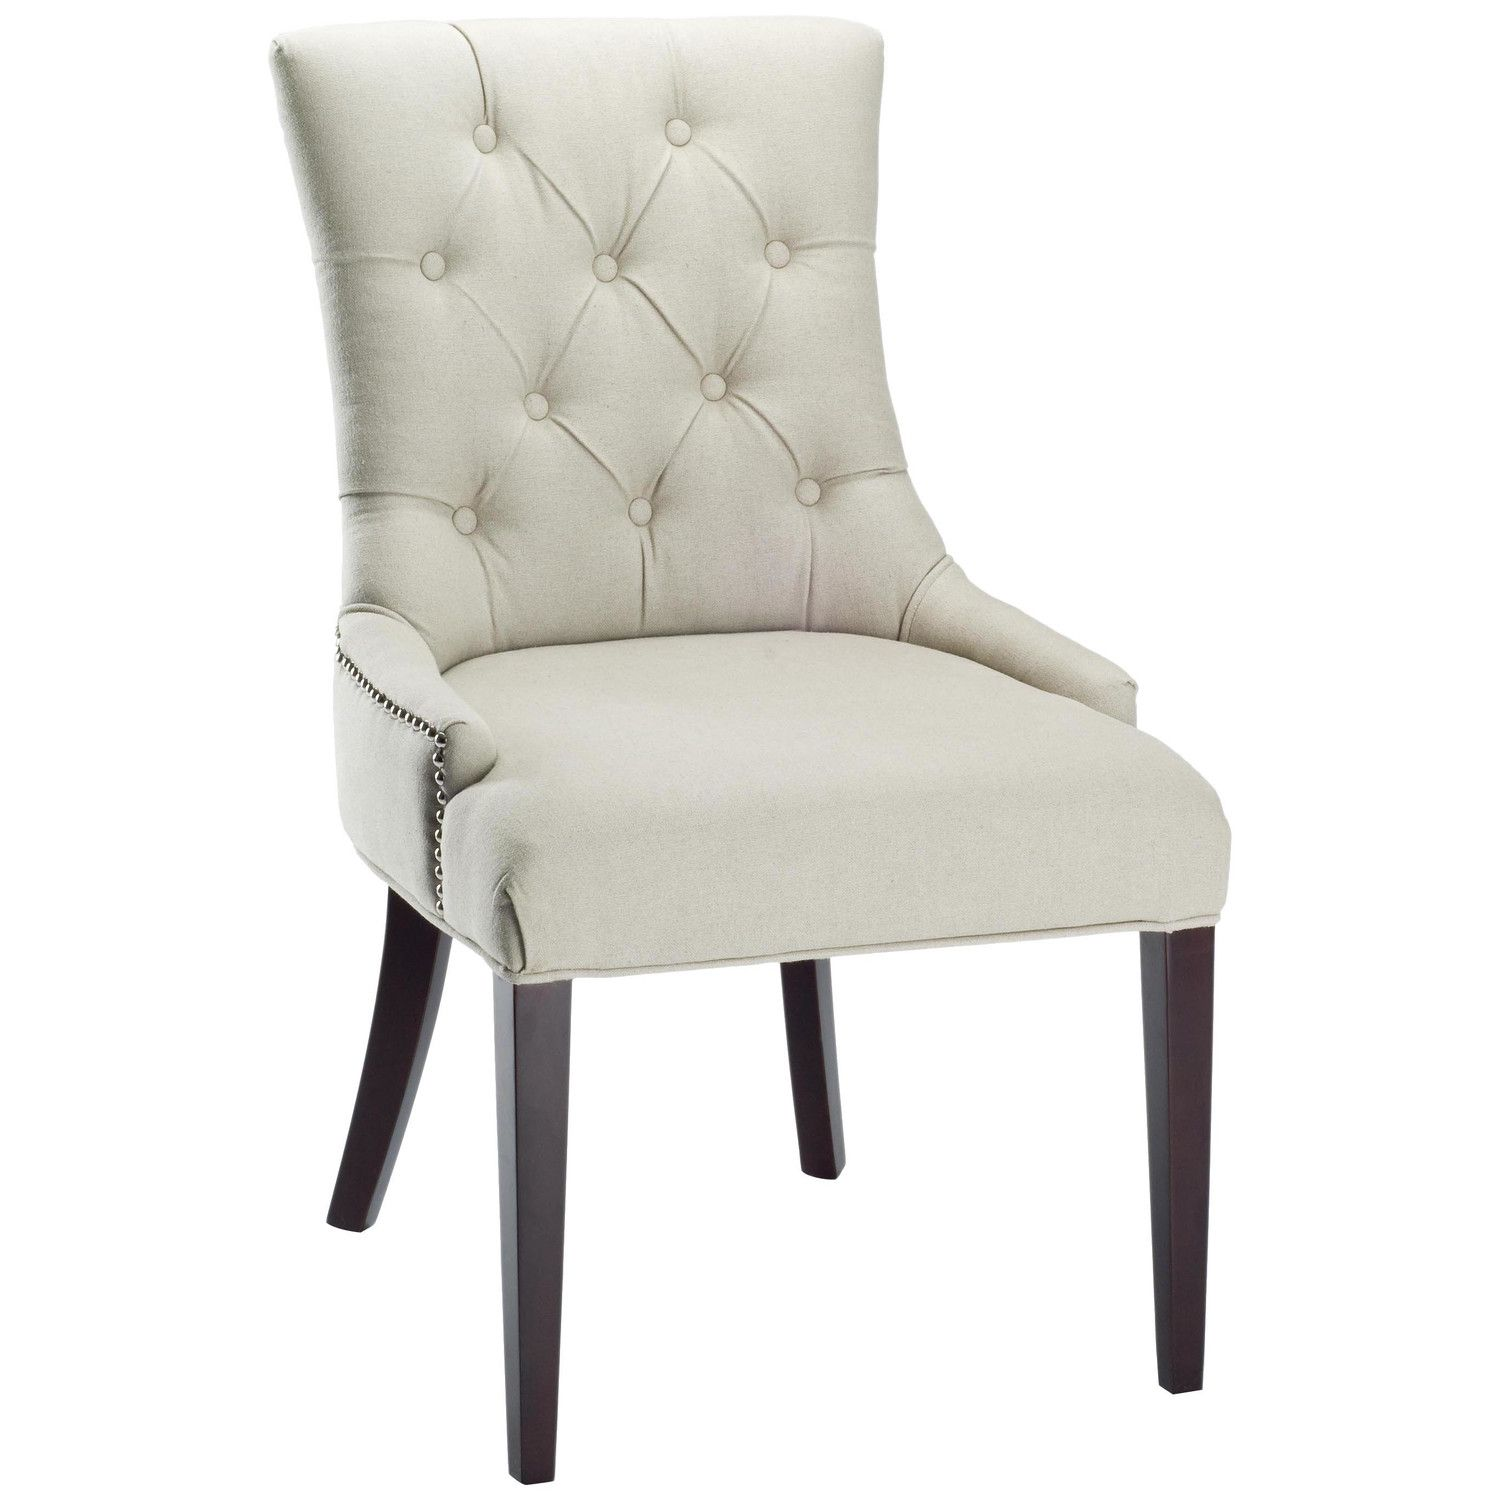 Safavieh Amanda Side Chair From Wayfair Is 225 And Is A